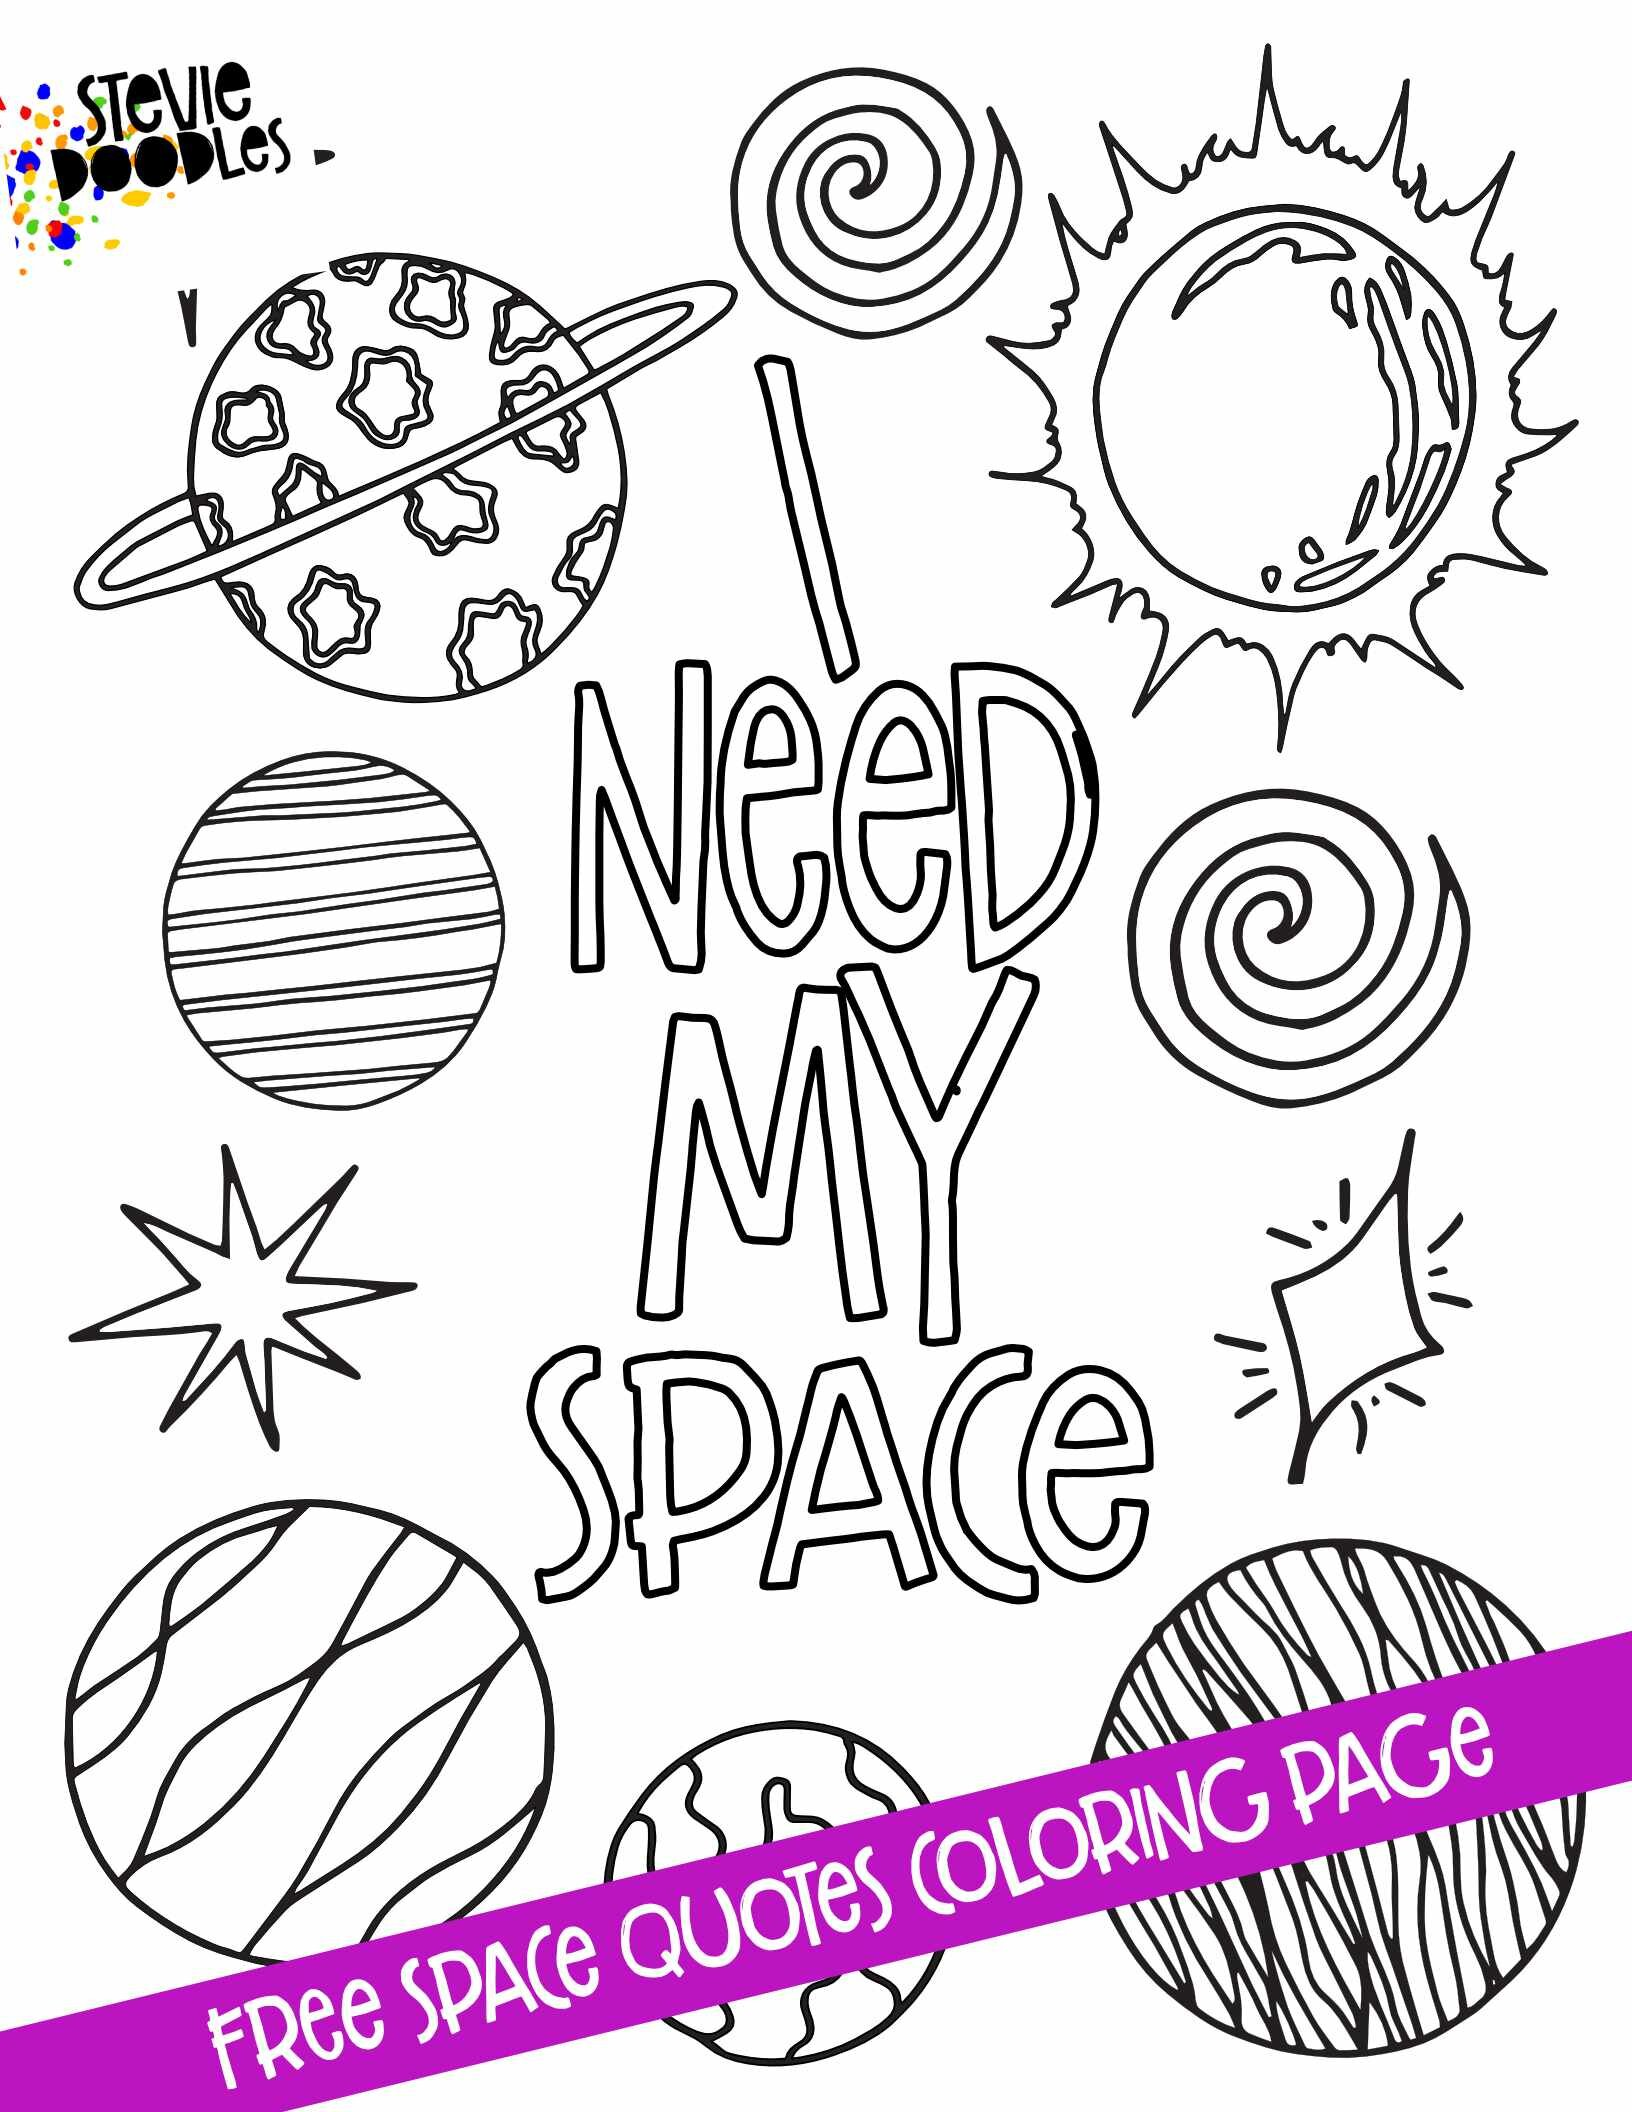 Space Quotes 5 Free Printable Coloring Pages Stevie Doodles